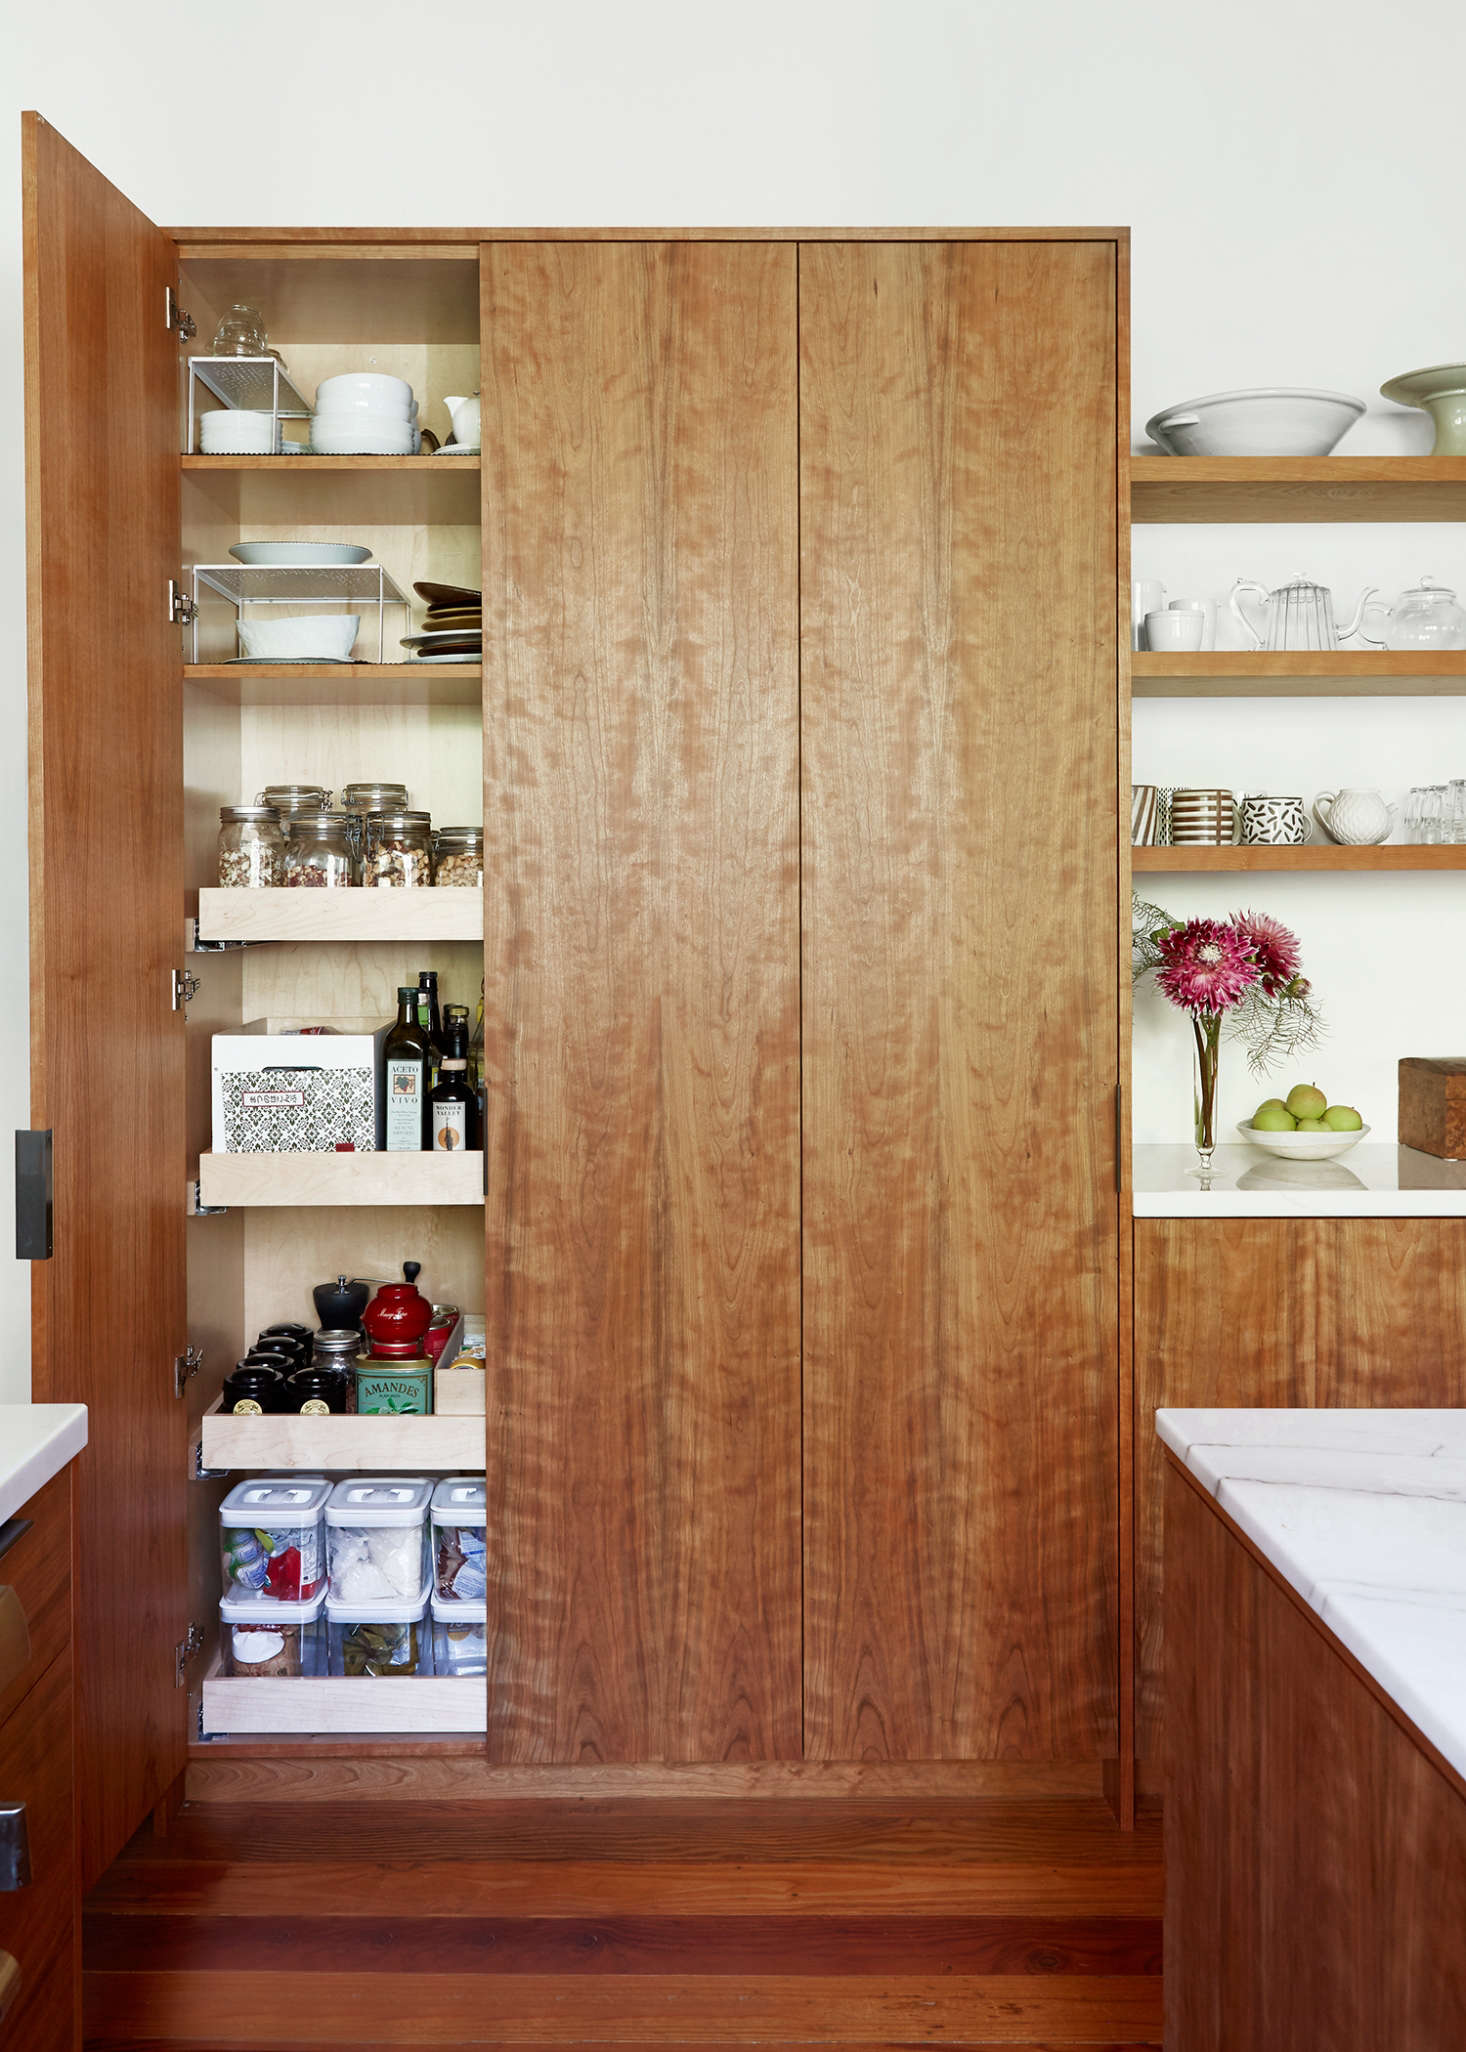 Brand new A Peek Inside the Pantry: 11 Kitchen Storage Favorites - Remodelista SD02